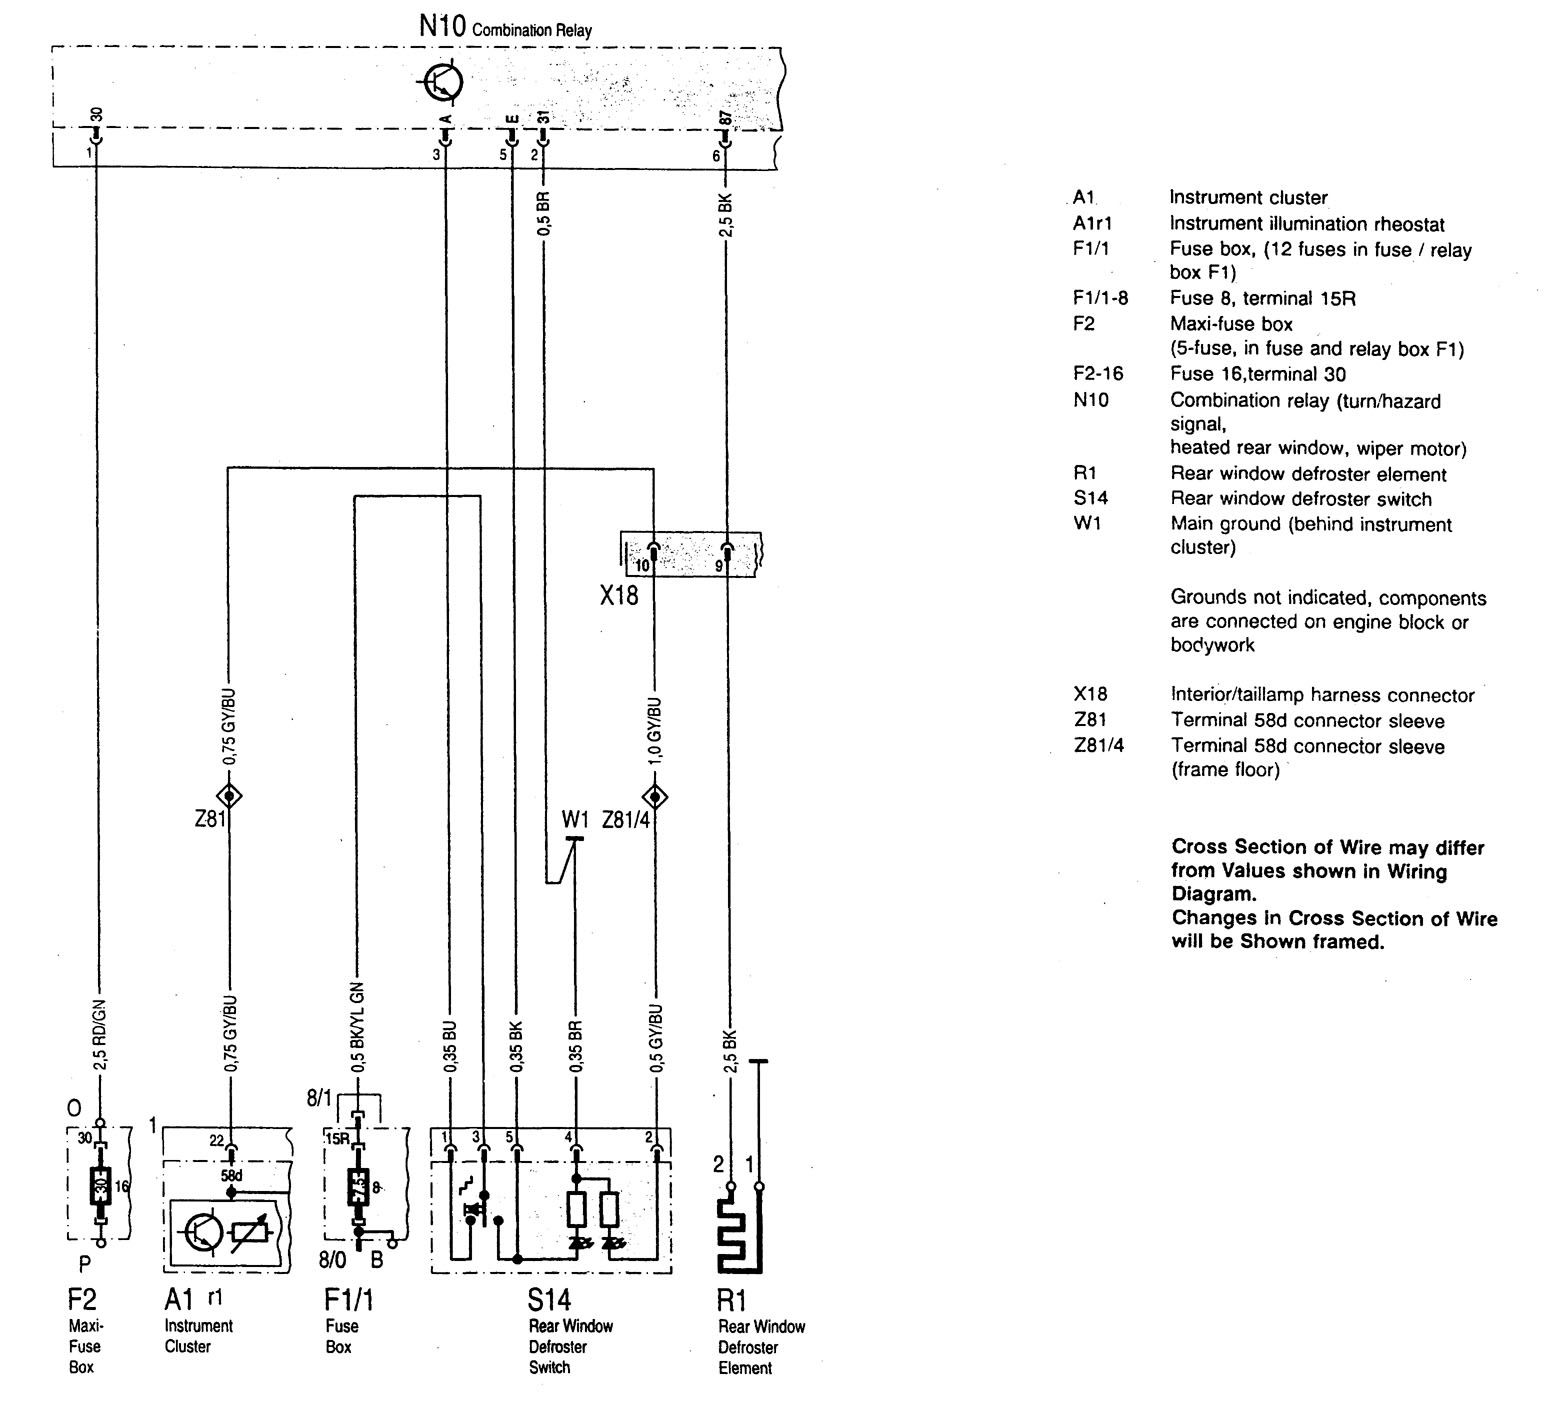 E420 Fuse Diagram Reinvent Your Wiring Mercedes Benz Vito 1997 Schematics Diagrams U2022 Rh Parntesis Co Electrical